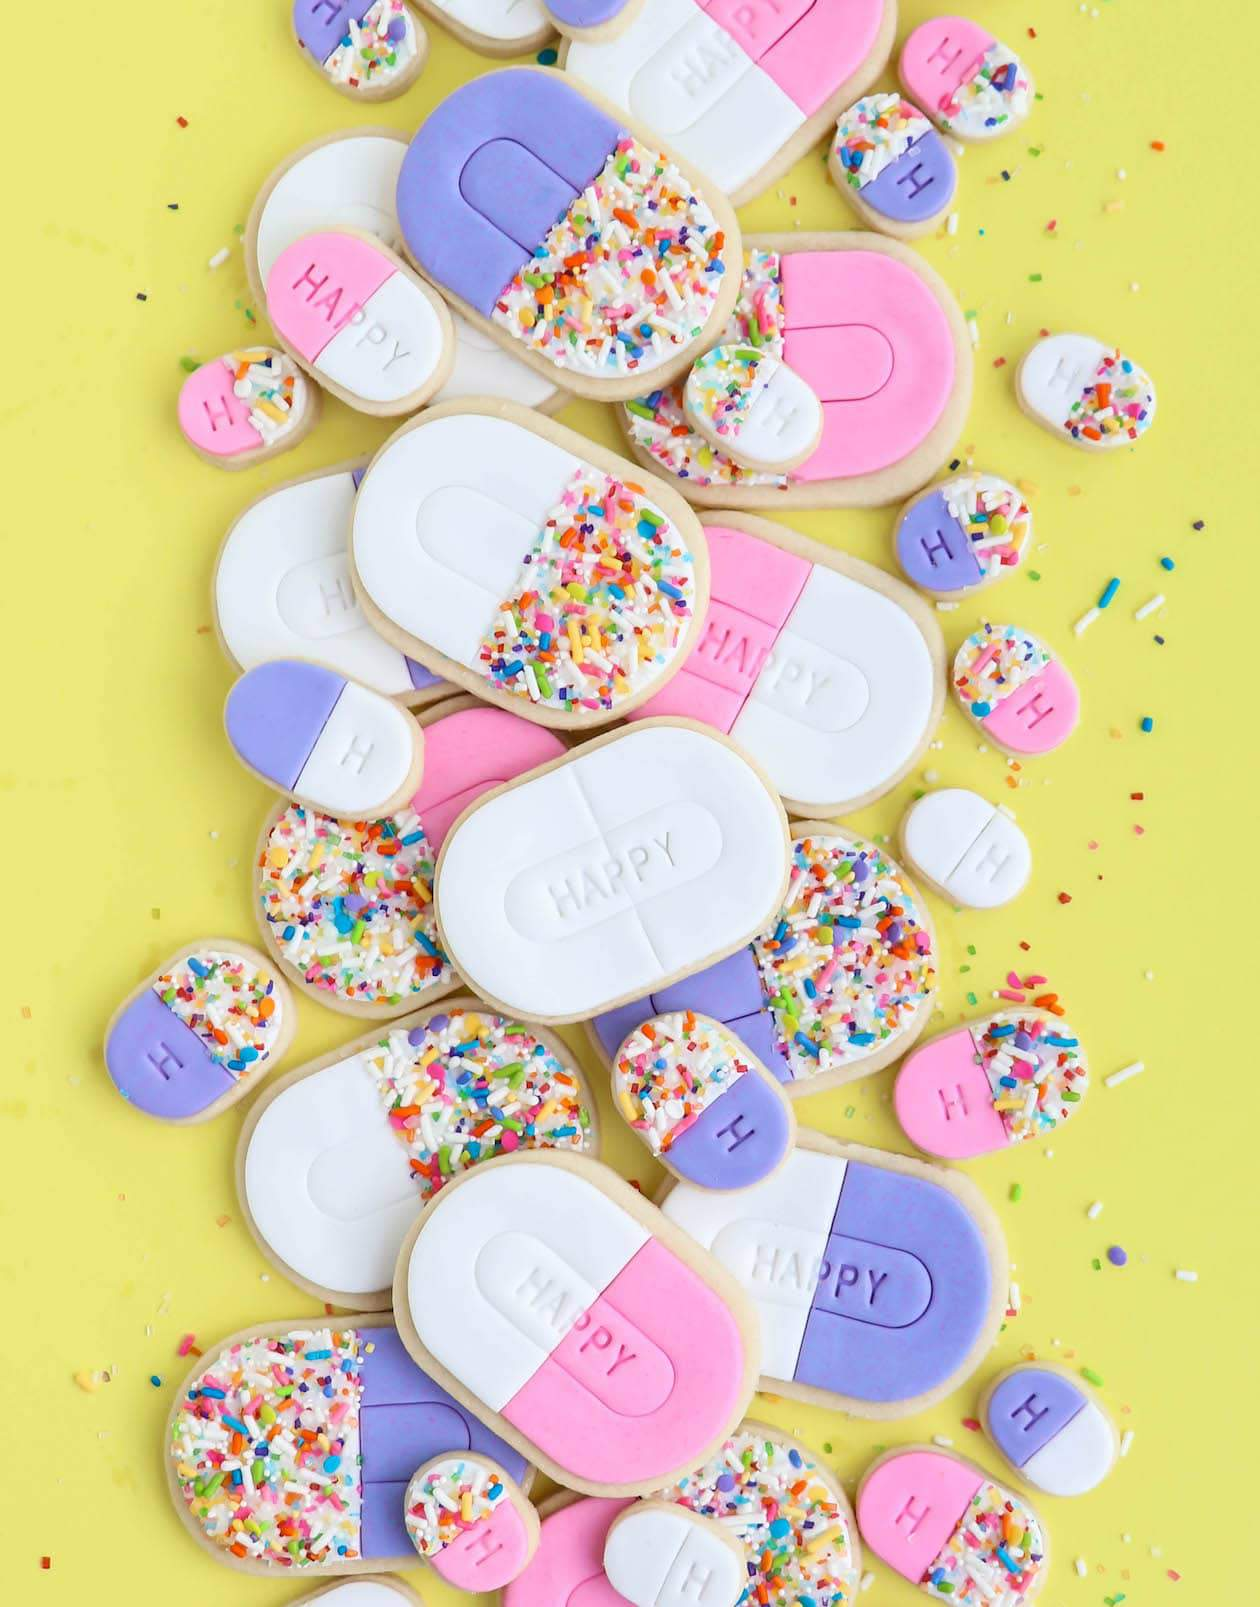 Make these adorable Happy Pill cookie jars using the free printable cookie label and gift to friends and family for a fun (and delicious) pick-me-up!